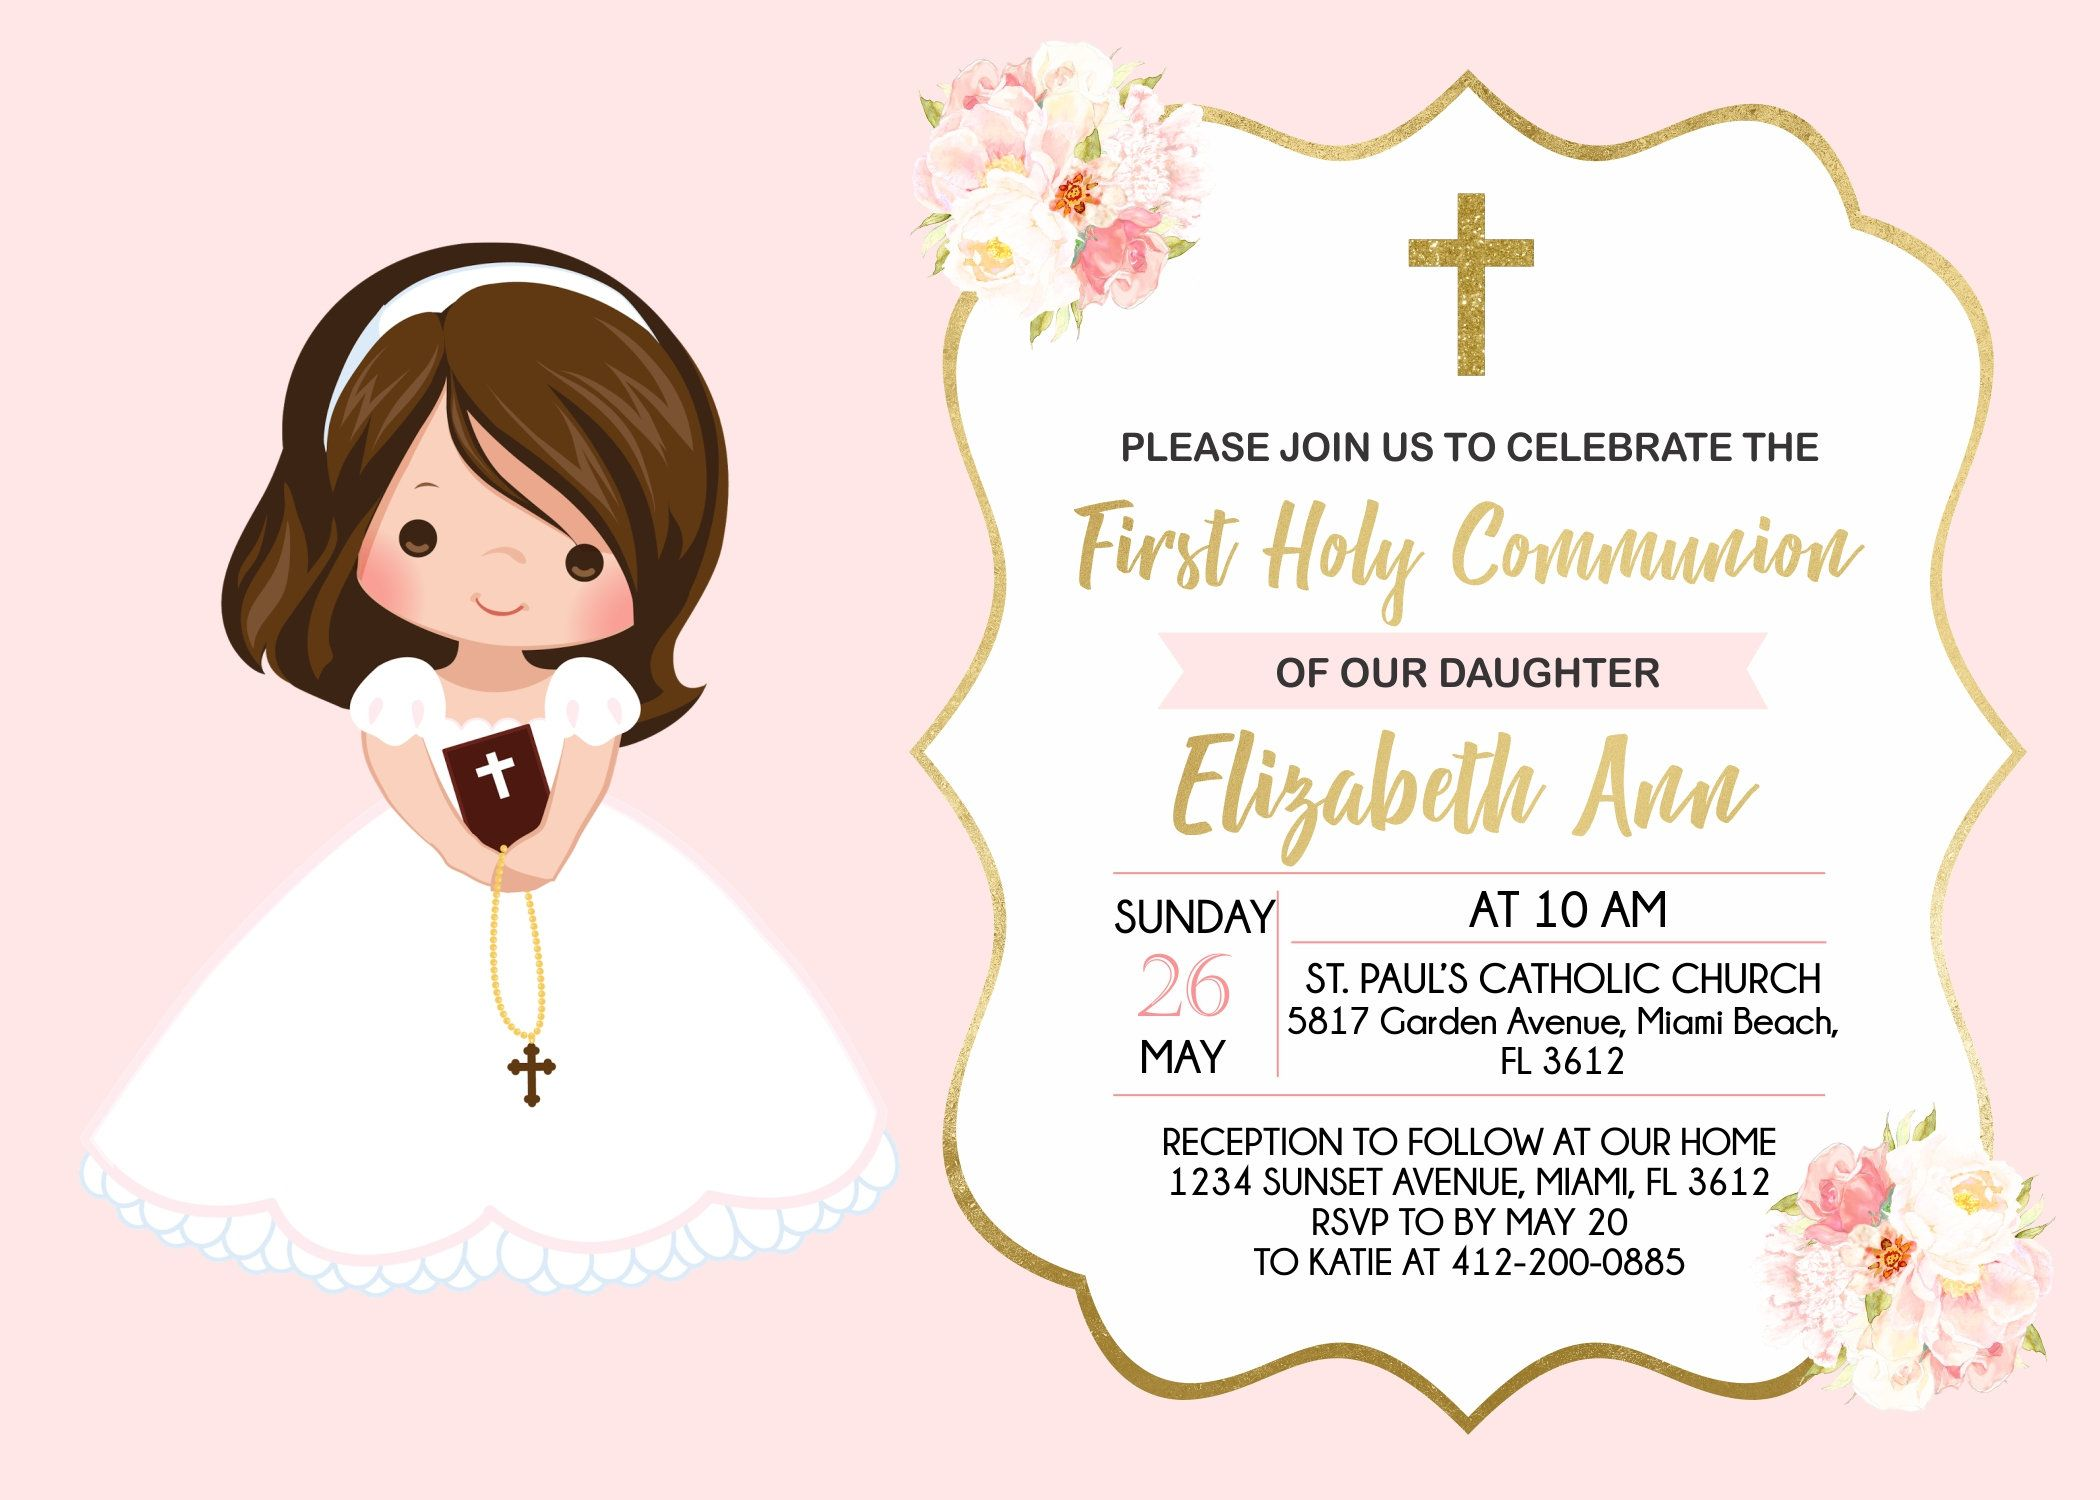 First Holy Communion Invitation Girl Printable Invitation Floral Watercolor Pink And Gold